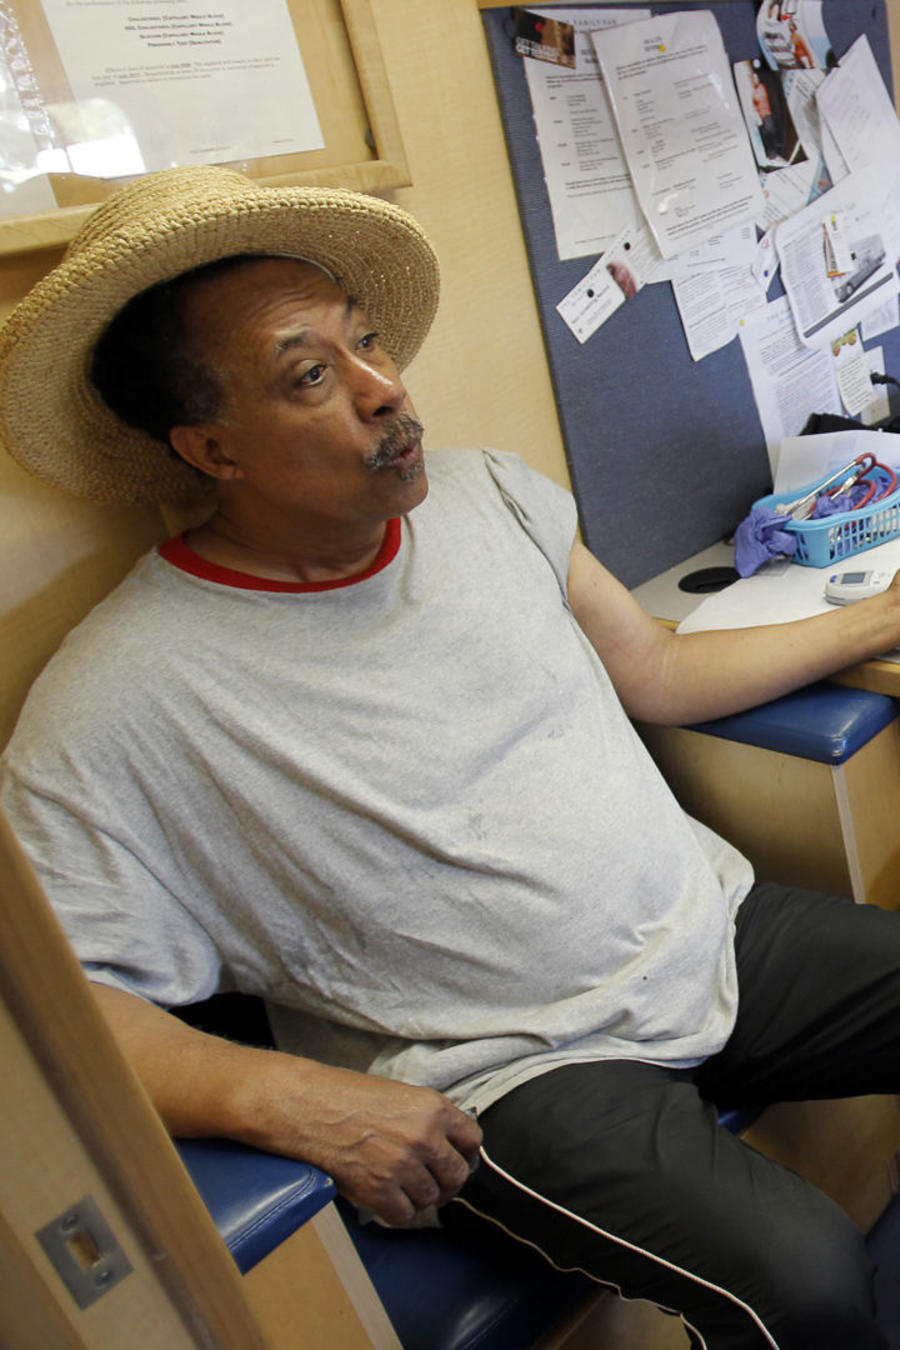 Client Dudley reacts as volunteer Pierre-Paul picks his finger for a cholesterol test in the Family Van in Boston